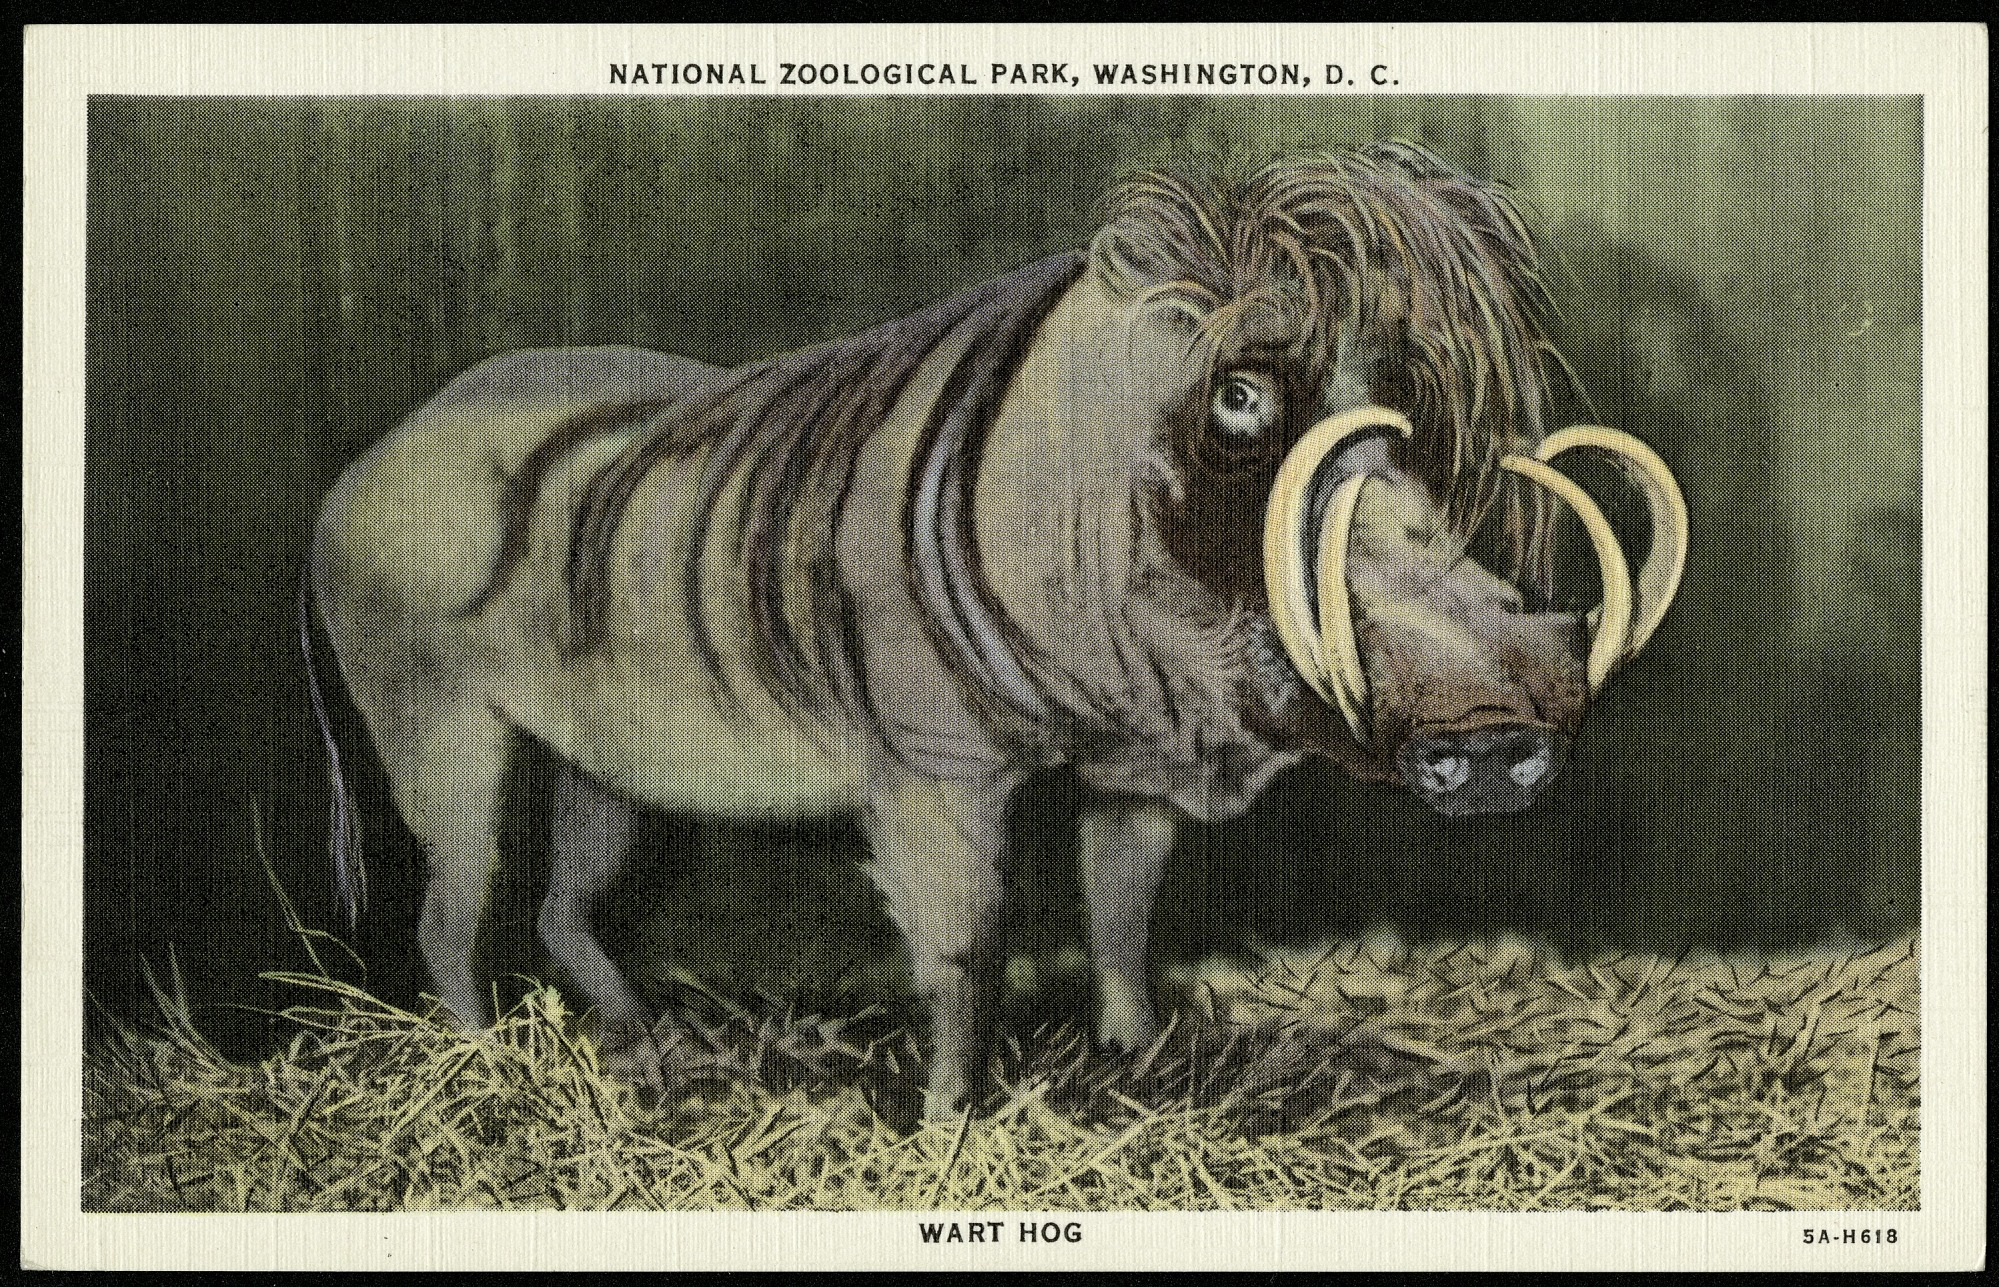 Postcard of a Wart Hog